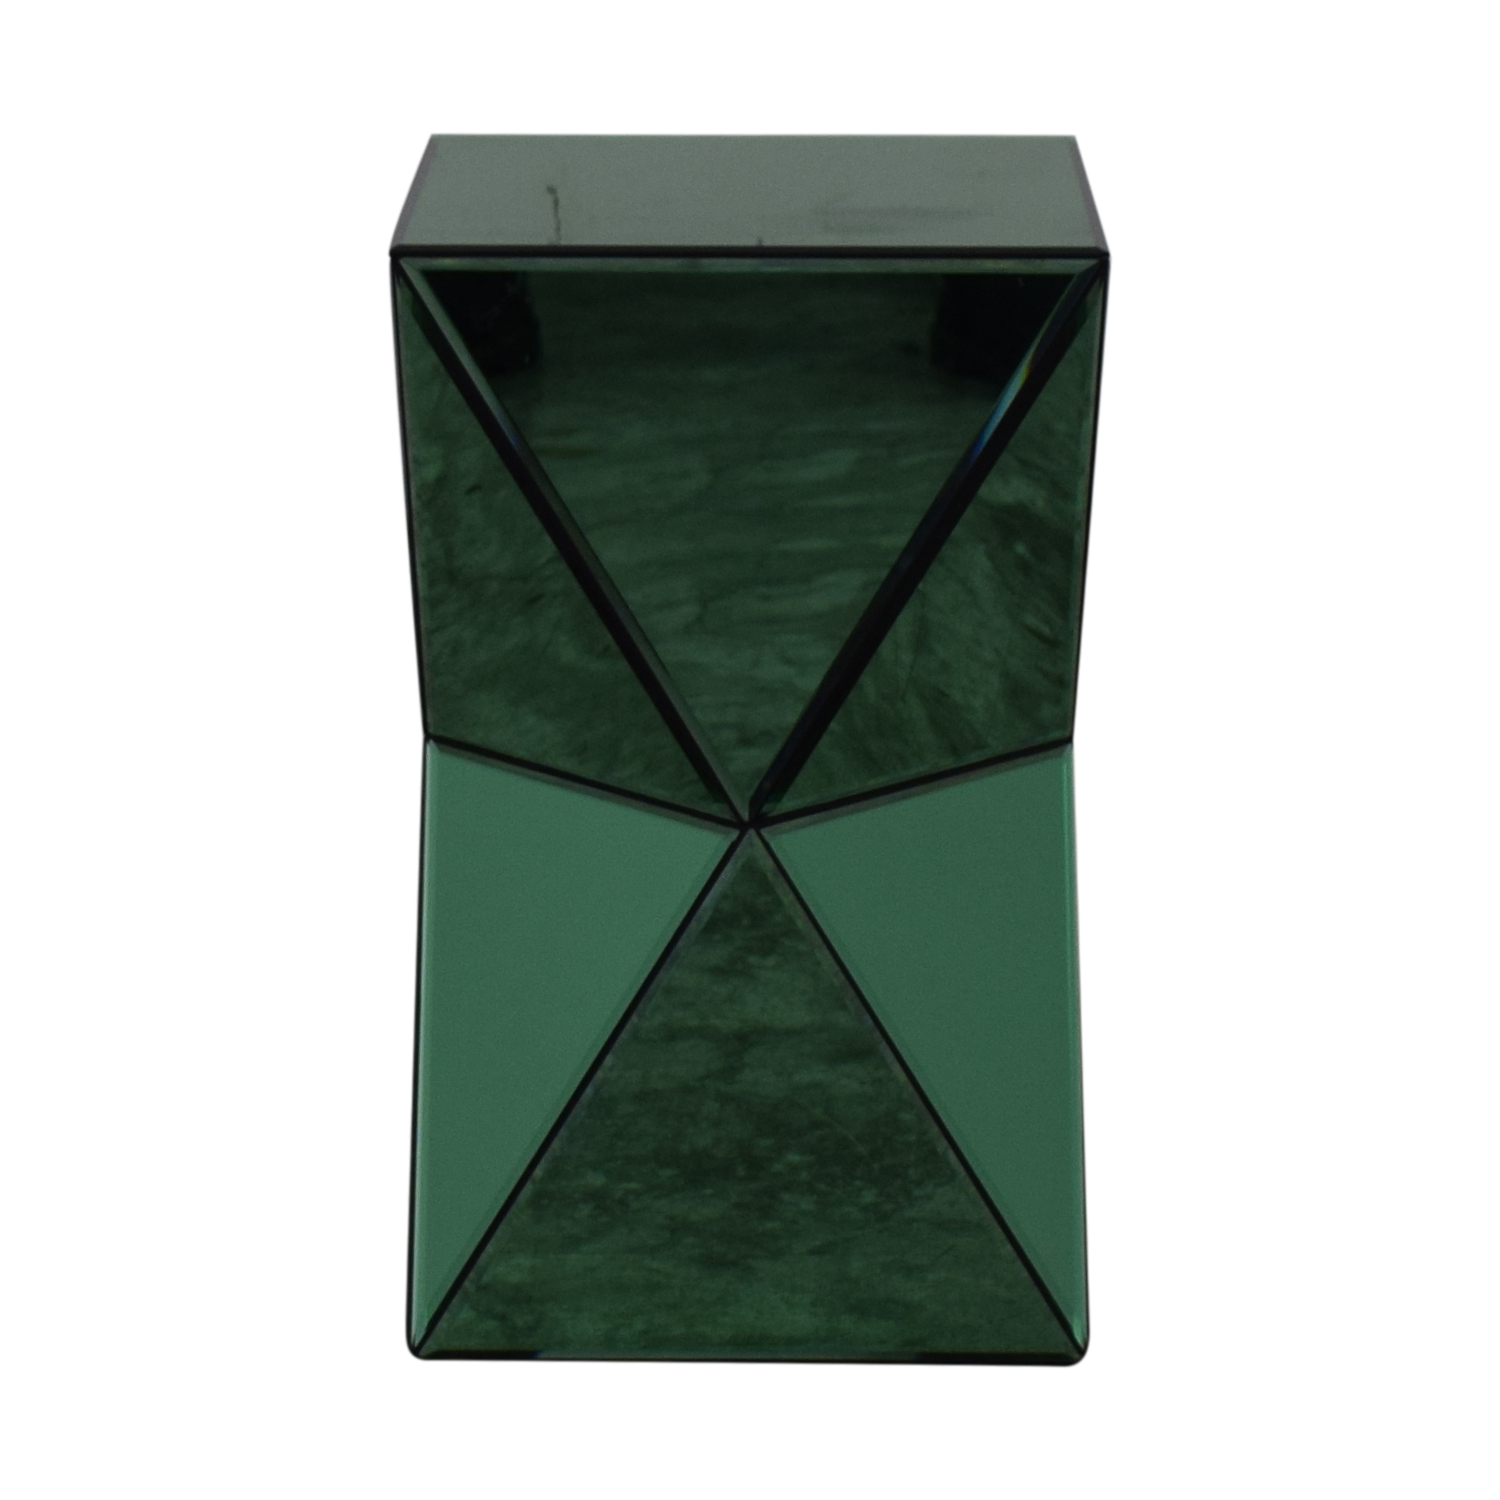 Bungalow 5 Bungalow 5 Romano Green Side Table Tables